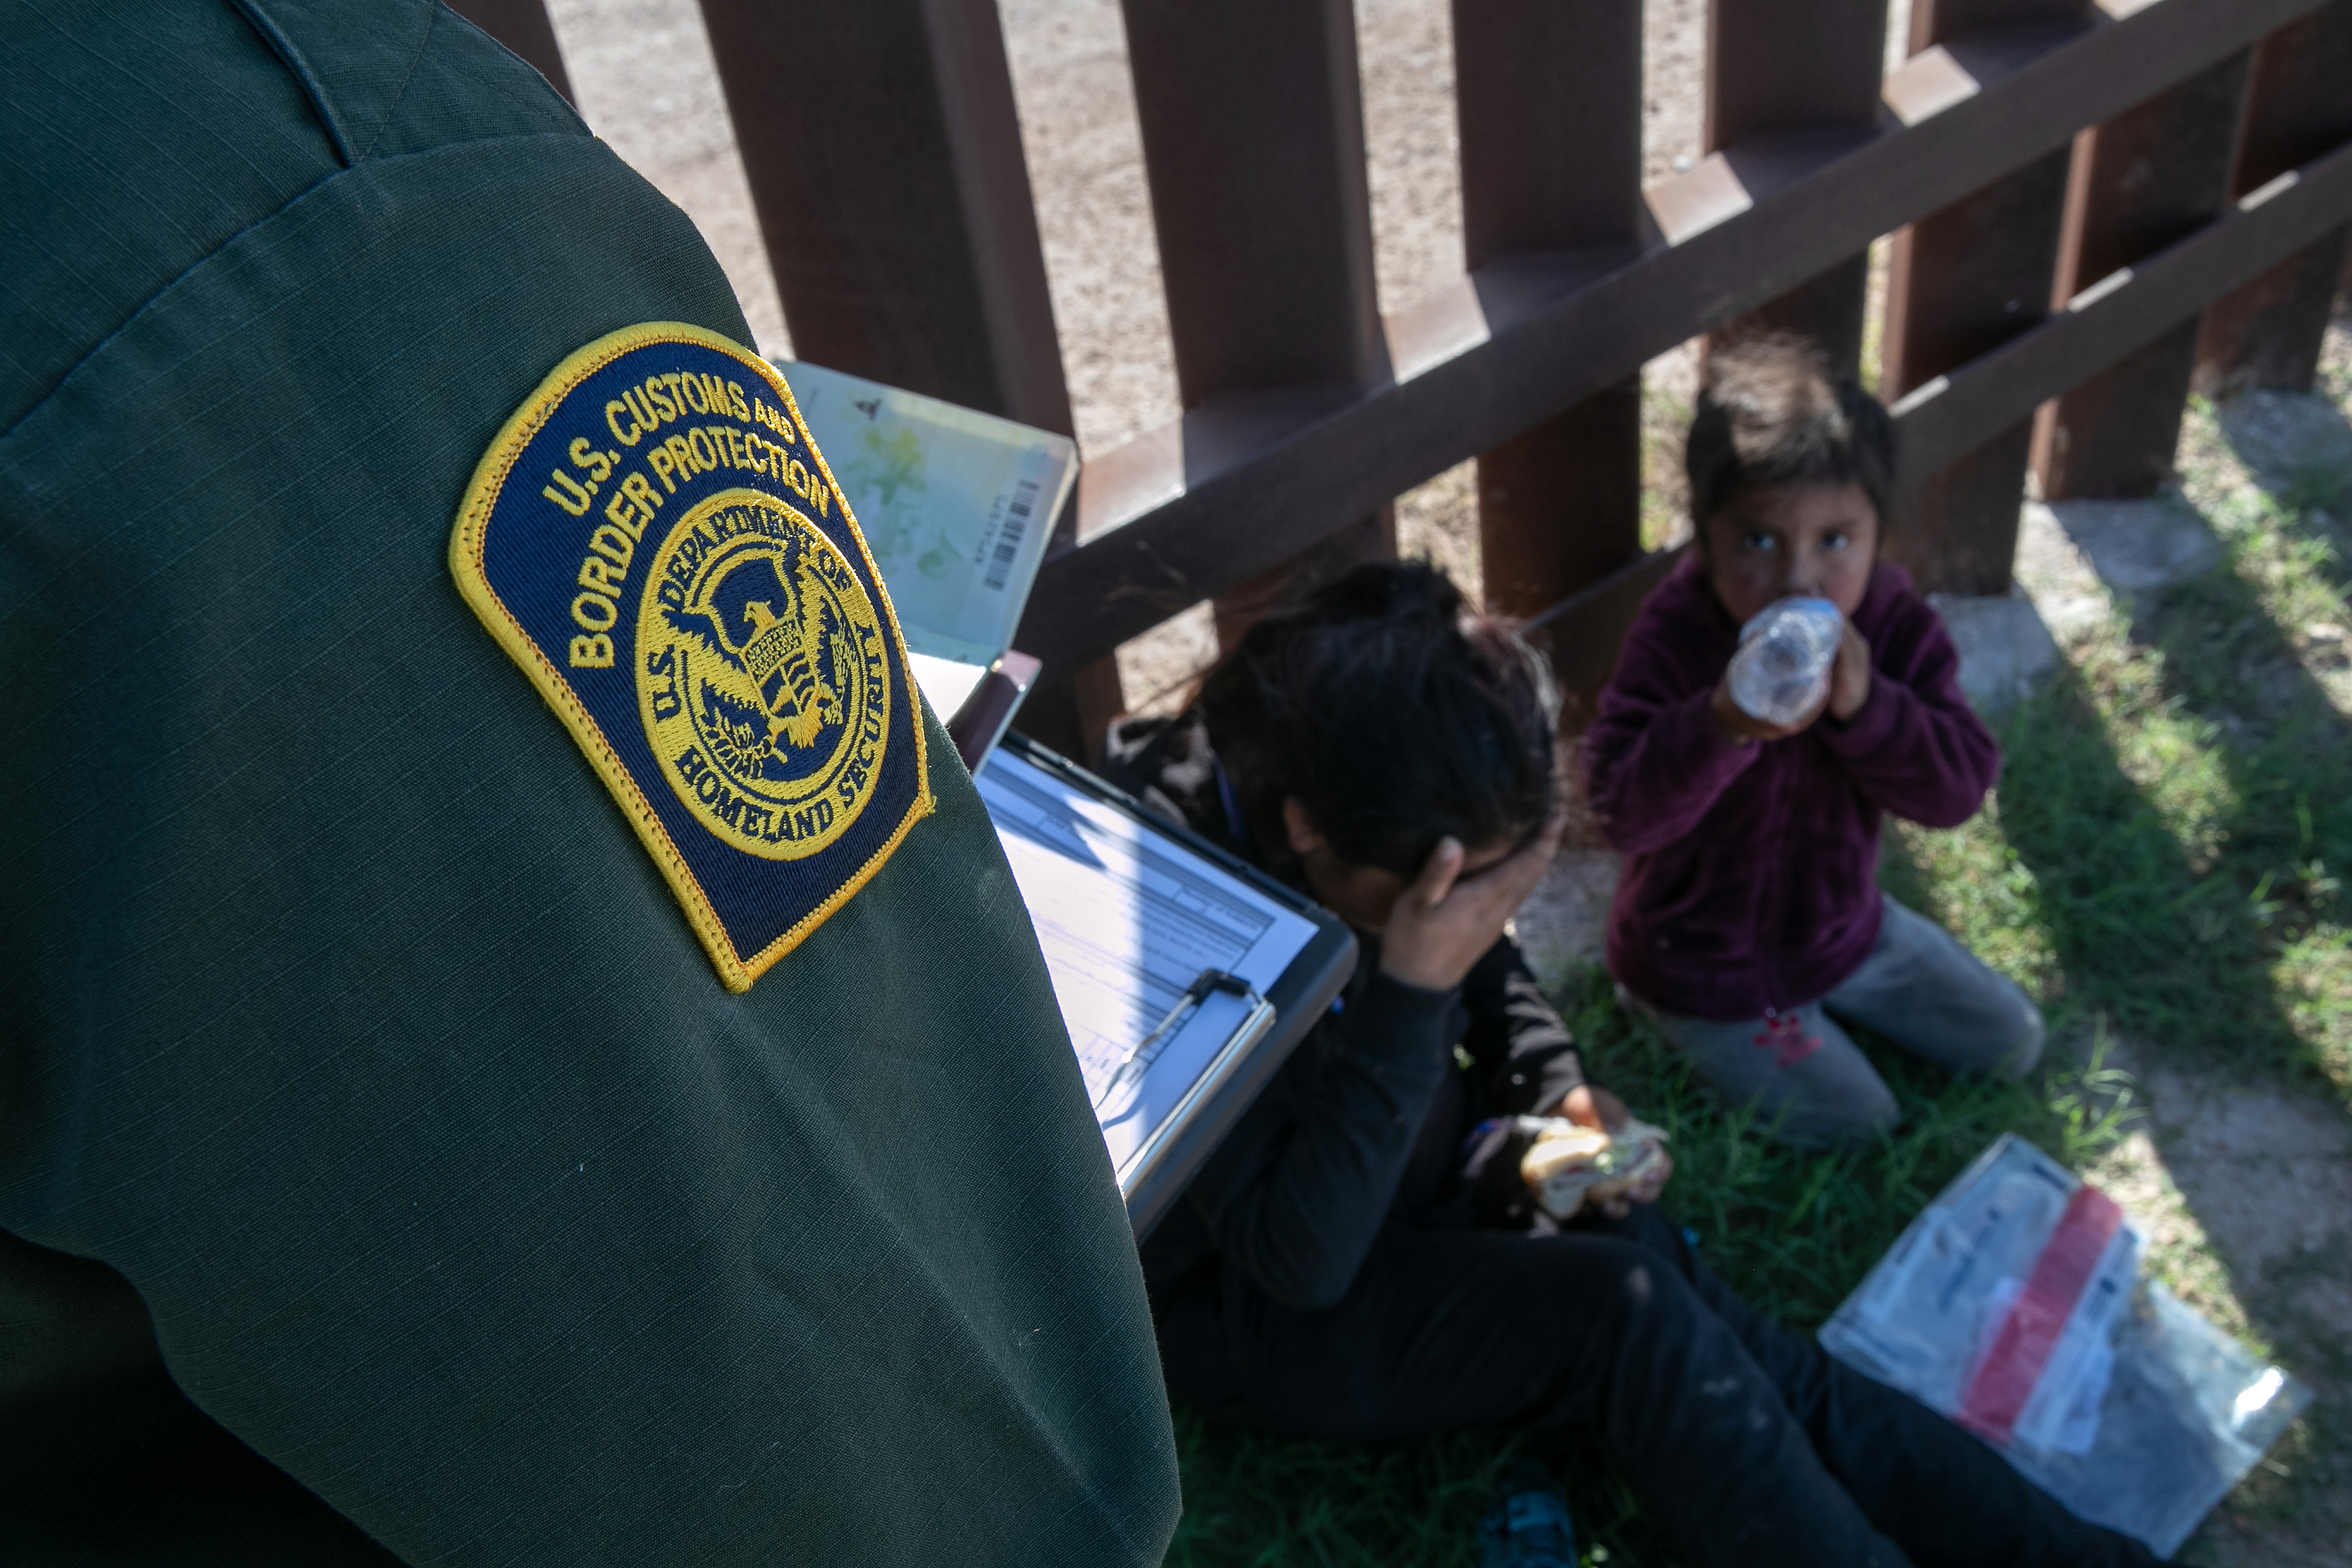 A U.S. Border Patrol agent checks the passports of a mother and daughter from Ecuador next to the border fence, after detaining them on Sept. 10, 2019 in Penitas, Texas.